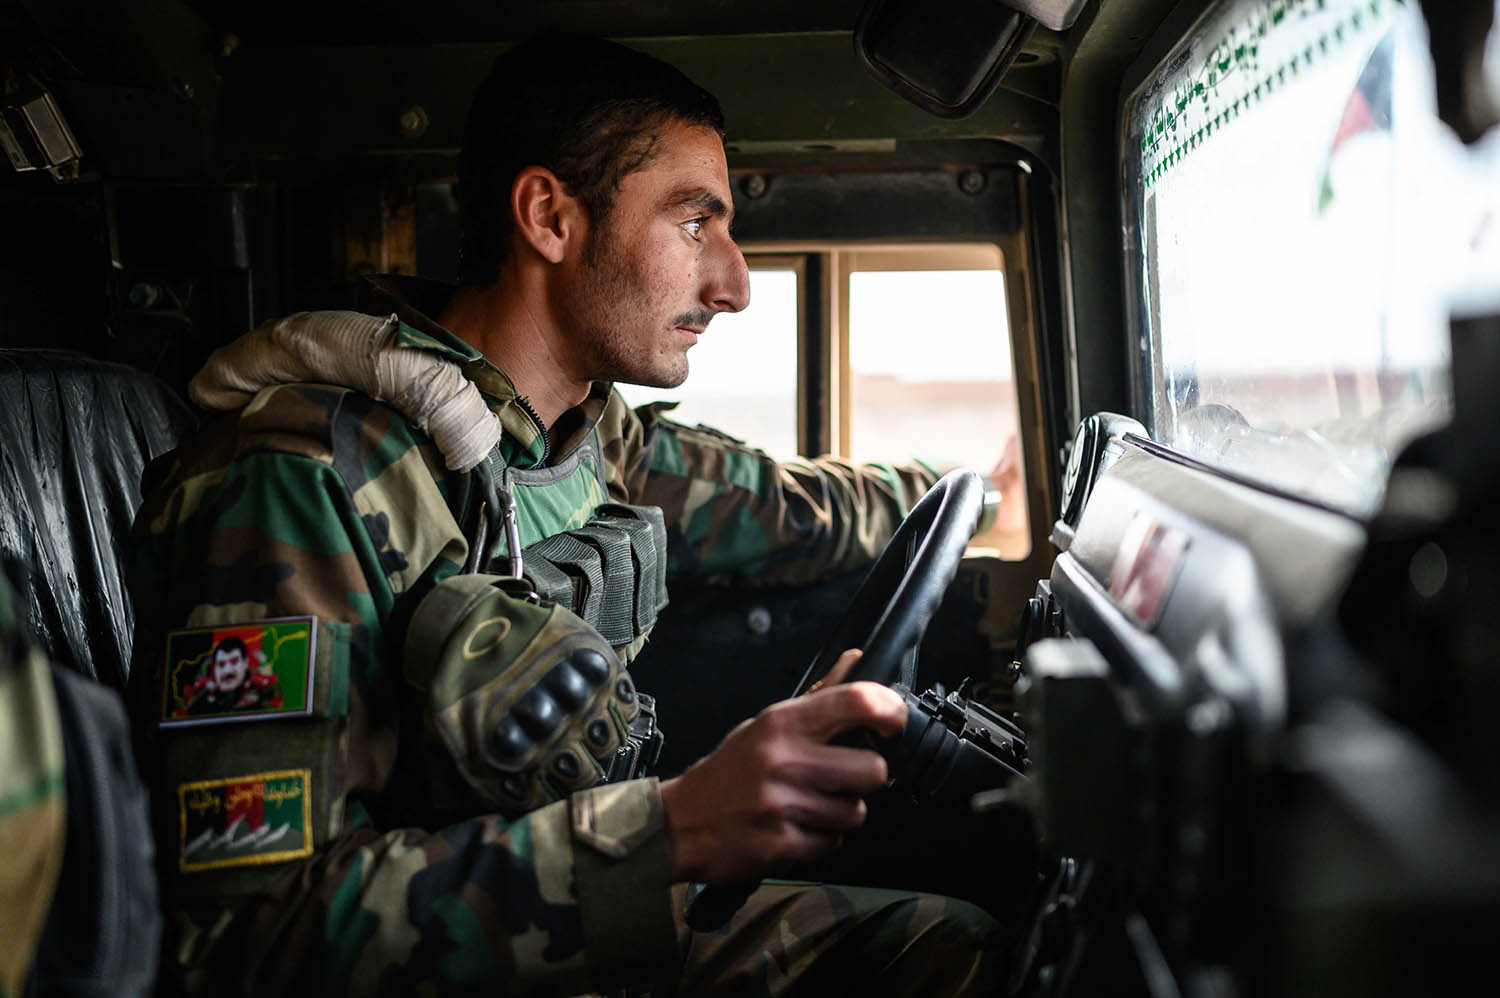 Hebaidullah Parwani of the Afghan National Army patrols with a convoy in Jowman district, along the main highway between Lashkarga and Kandahar, on Nov 19, 2019.